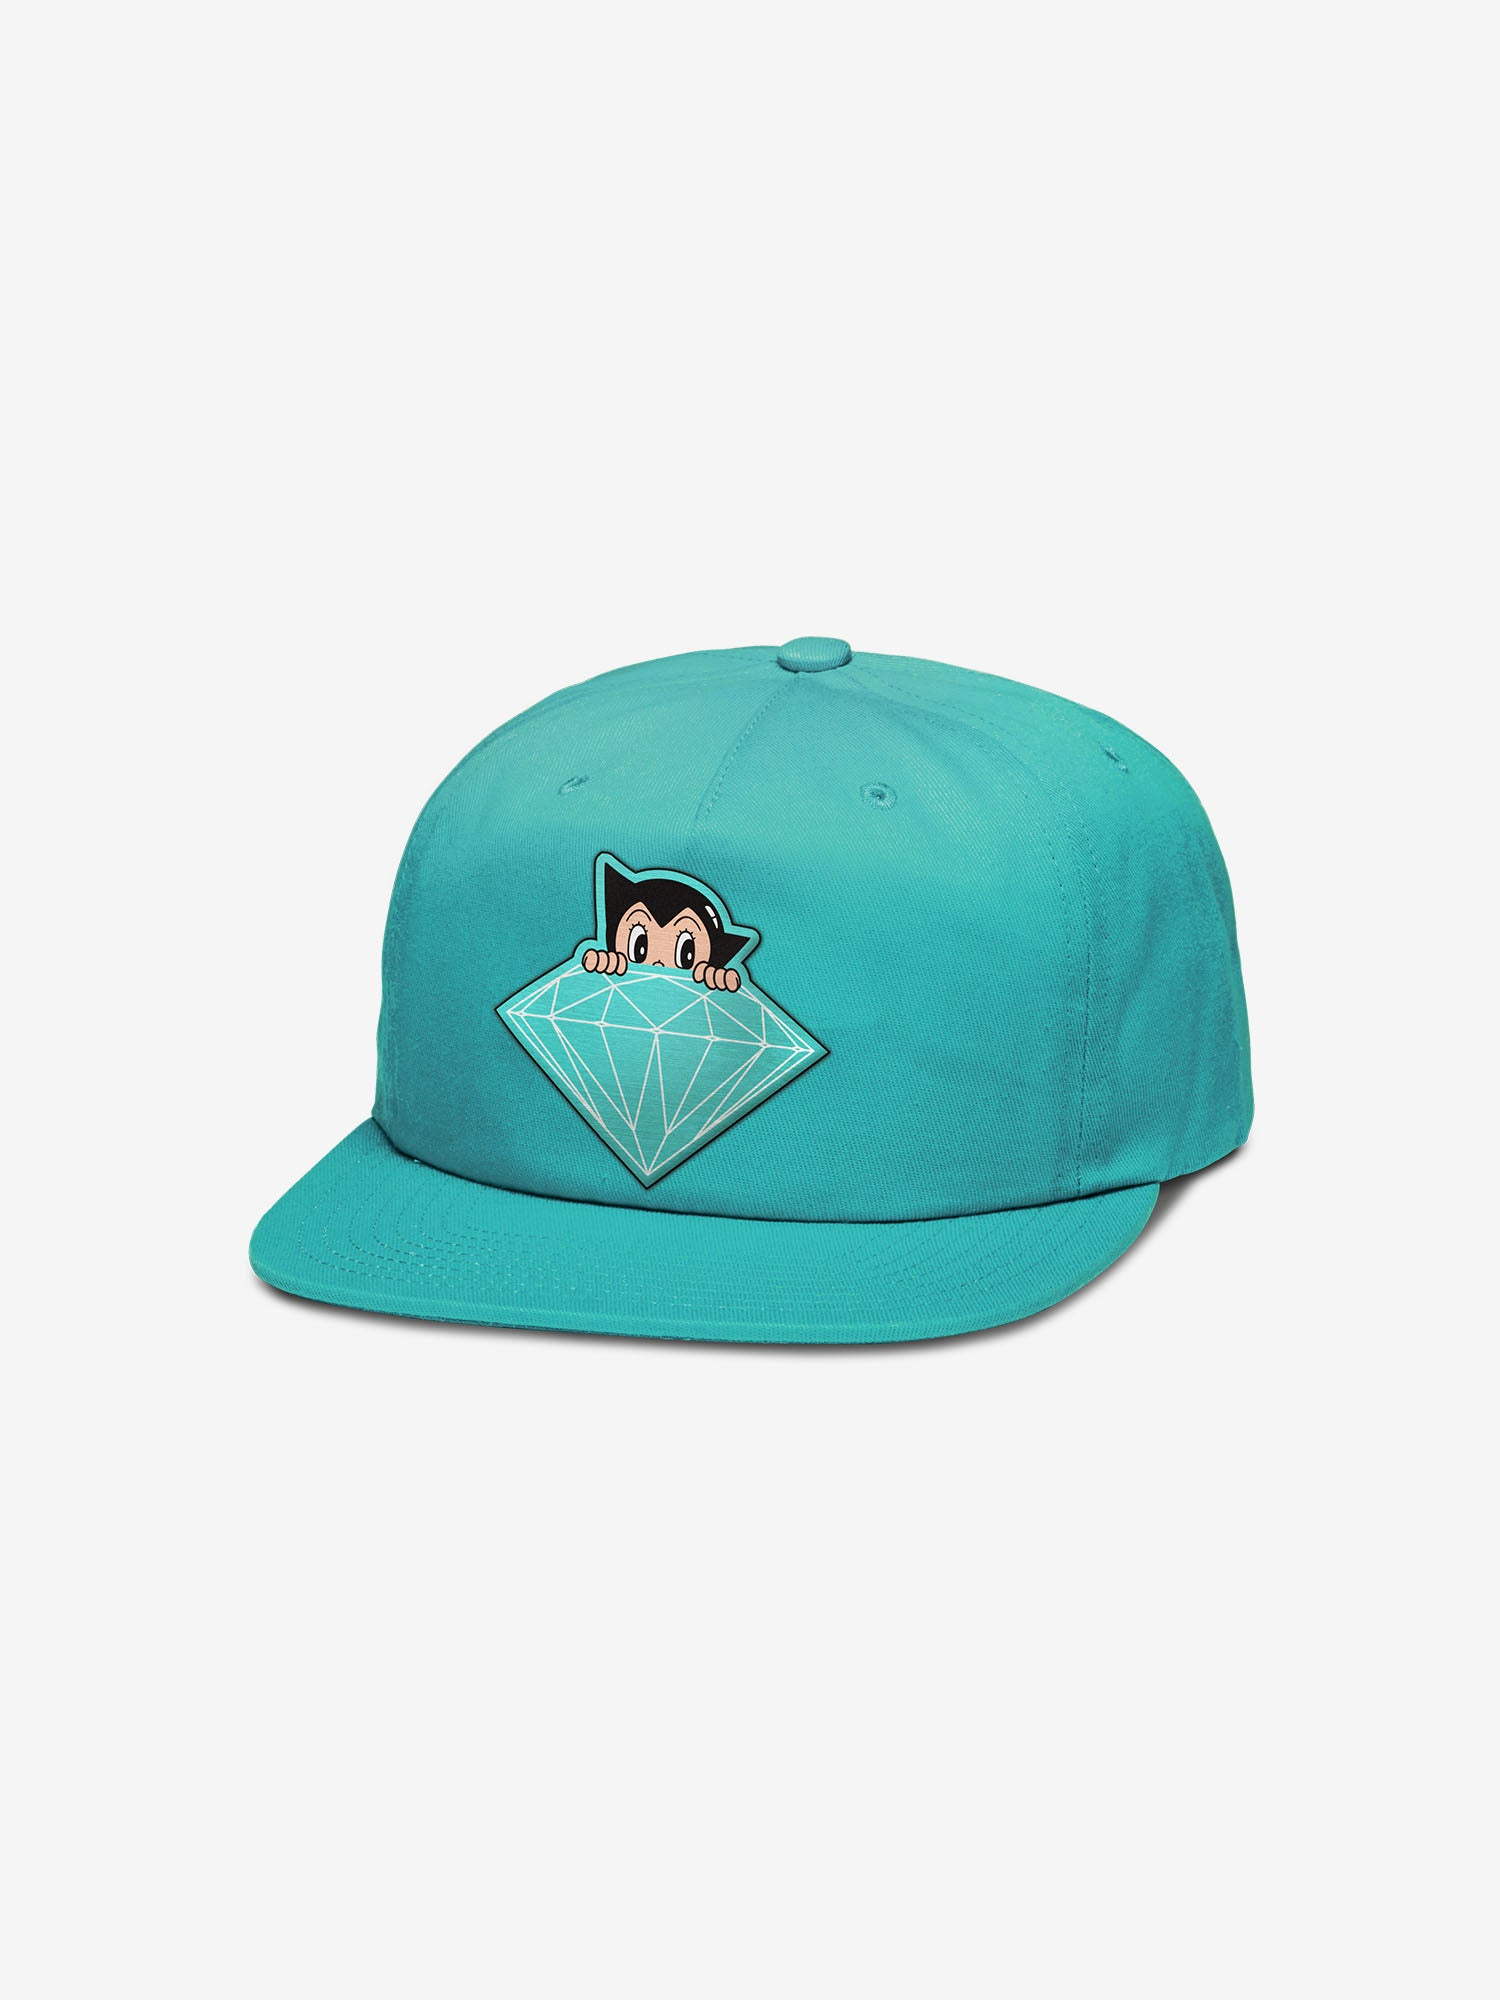 ae1e09bc7e76d0 Diamond x Astroboy Brilliant Snapback - Diamond Blue - Diamond Supply Co.